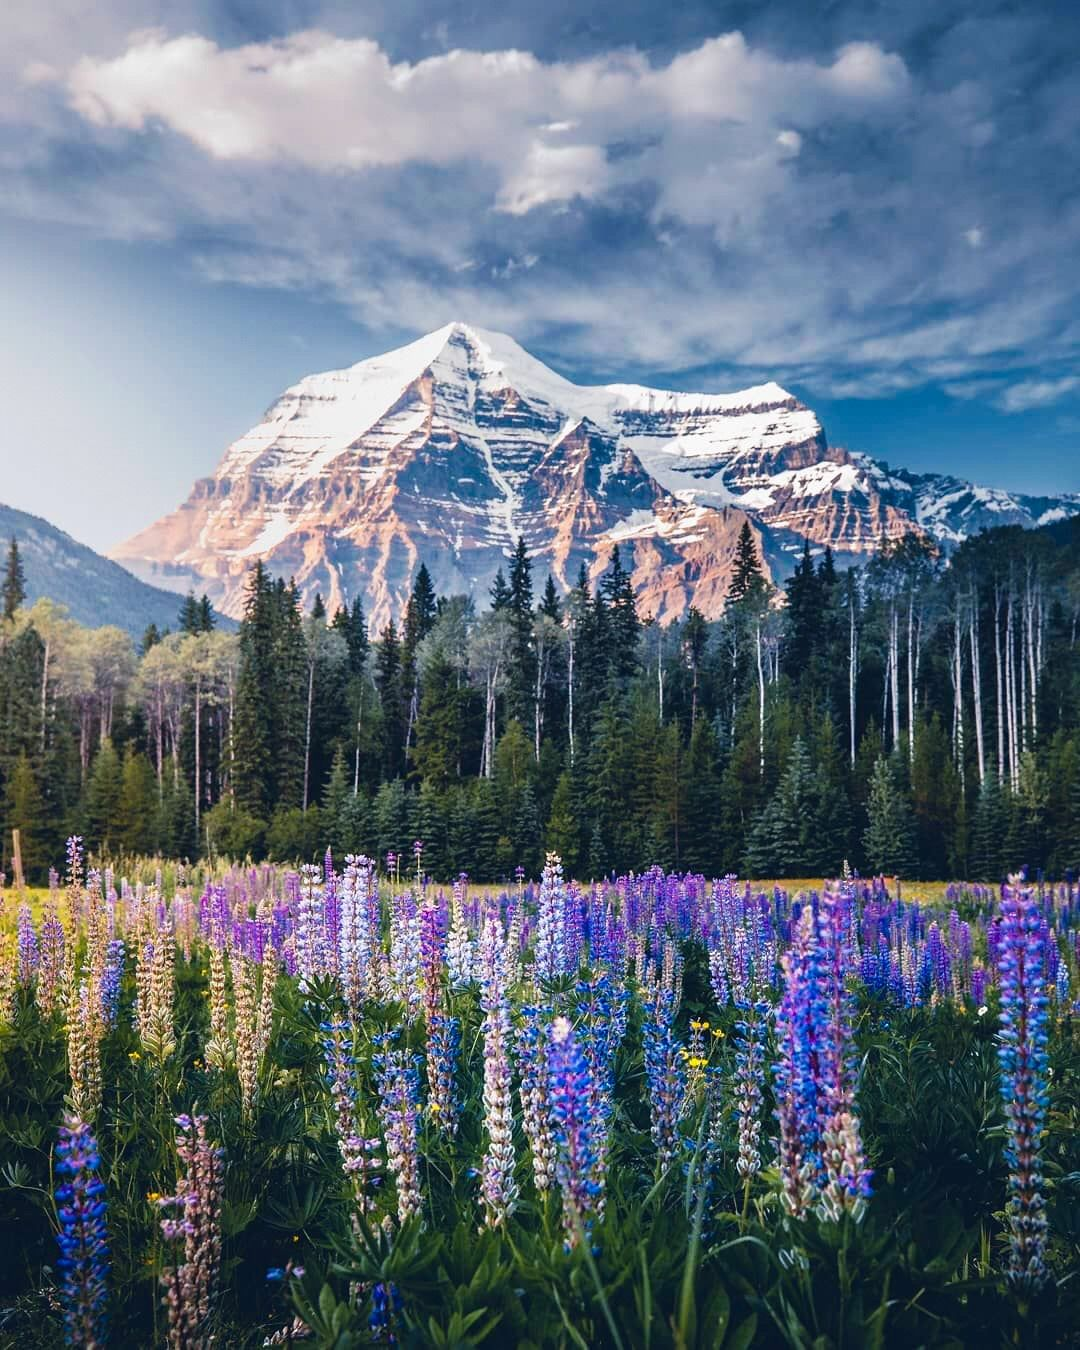 Mt Robson Highest Peak In The Canadian Rockies Mt Robson Provincial Park Bc By Martina Gebarovska Beautiful Nature Canadian Rockies Beautiful Places